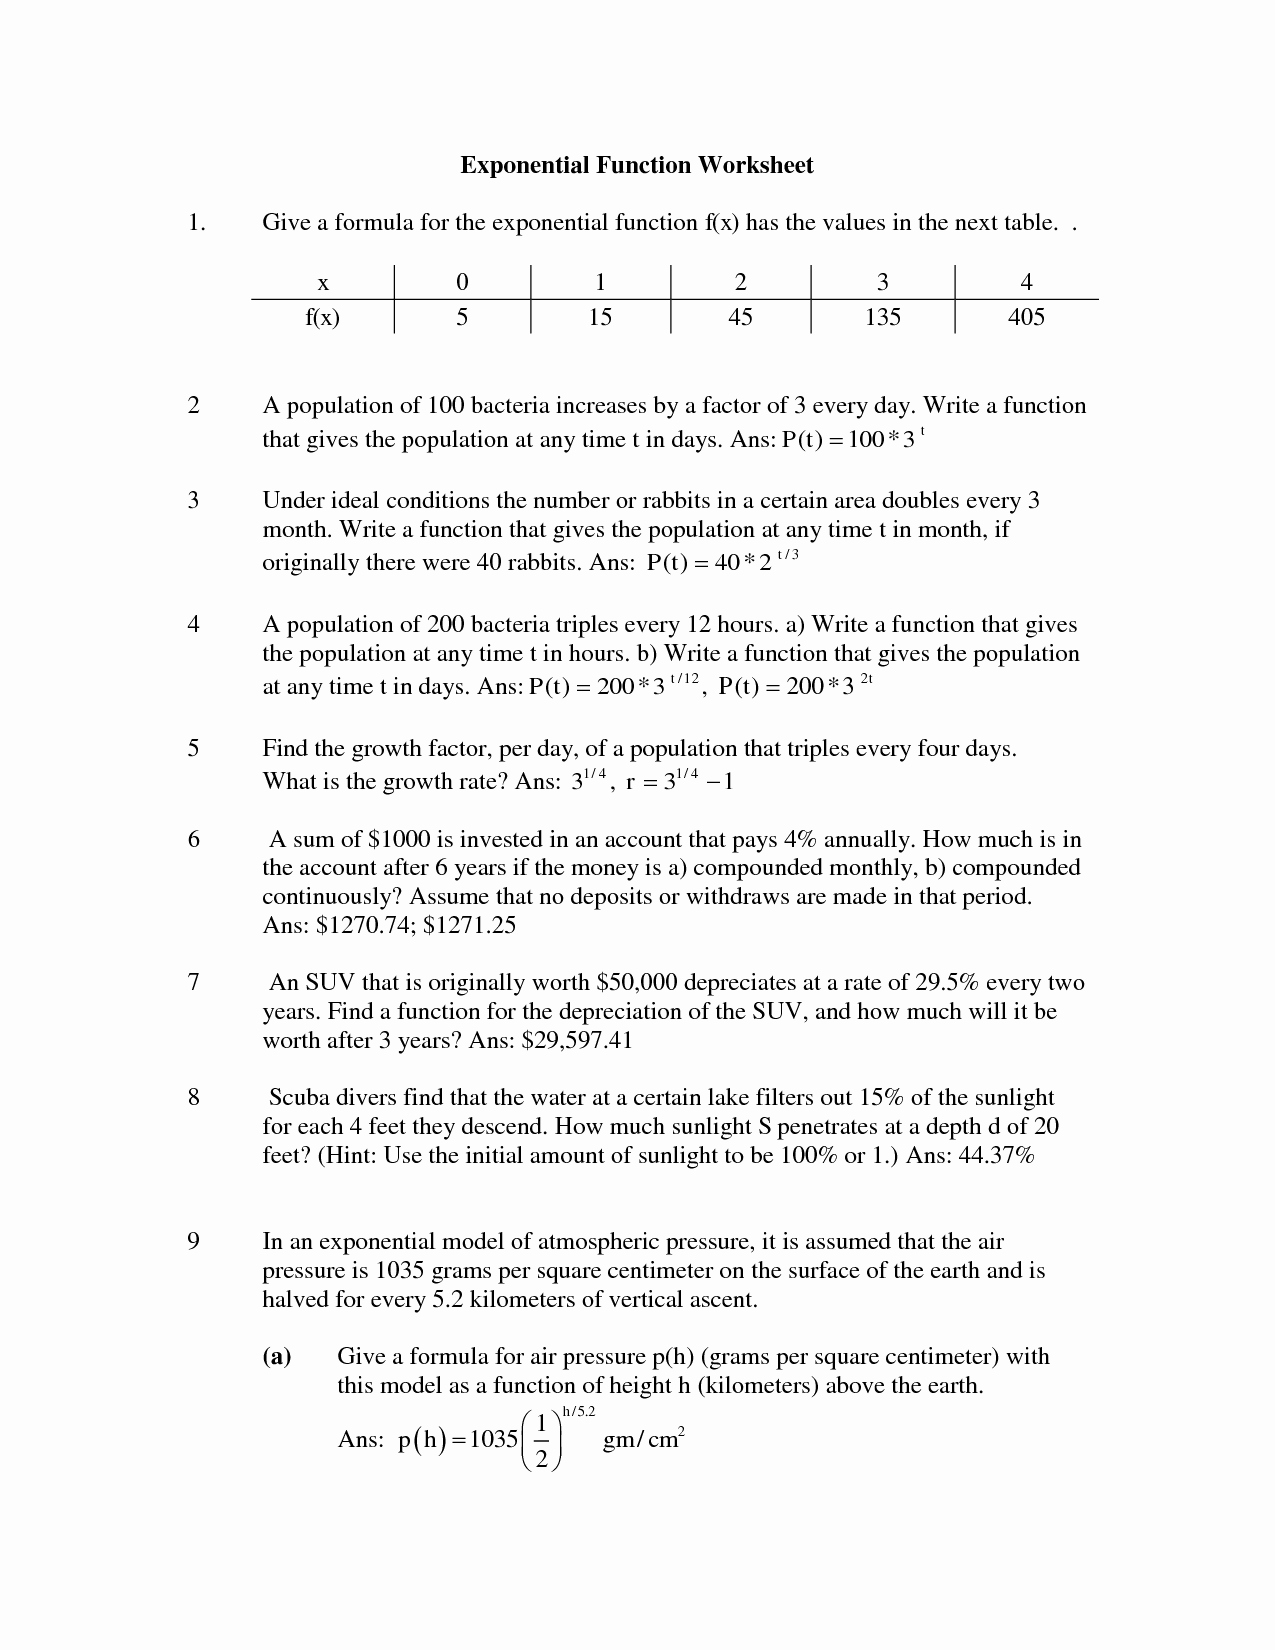 Exponential Growth and Decay Worksheet Best Of Simple Exponential Worksheet